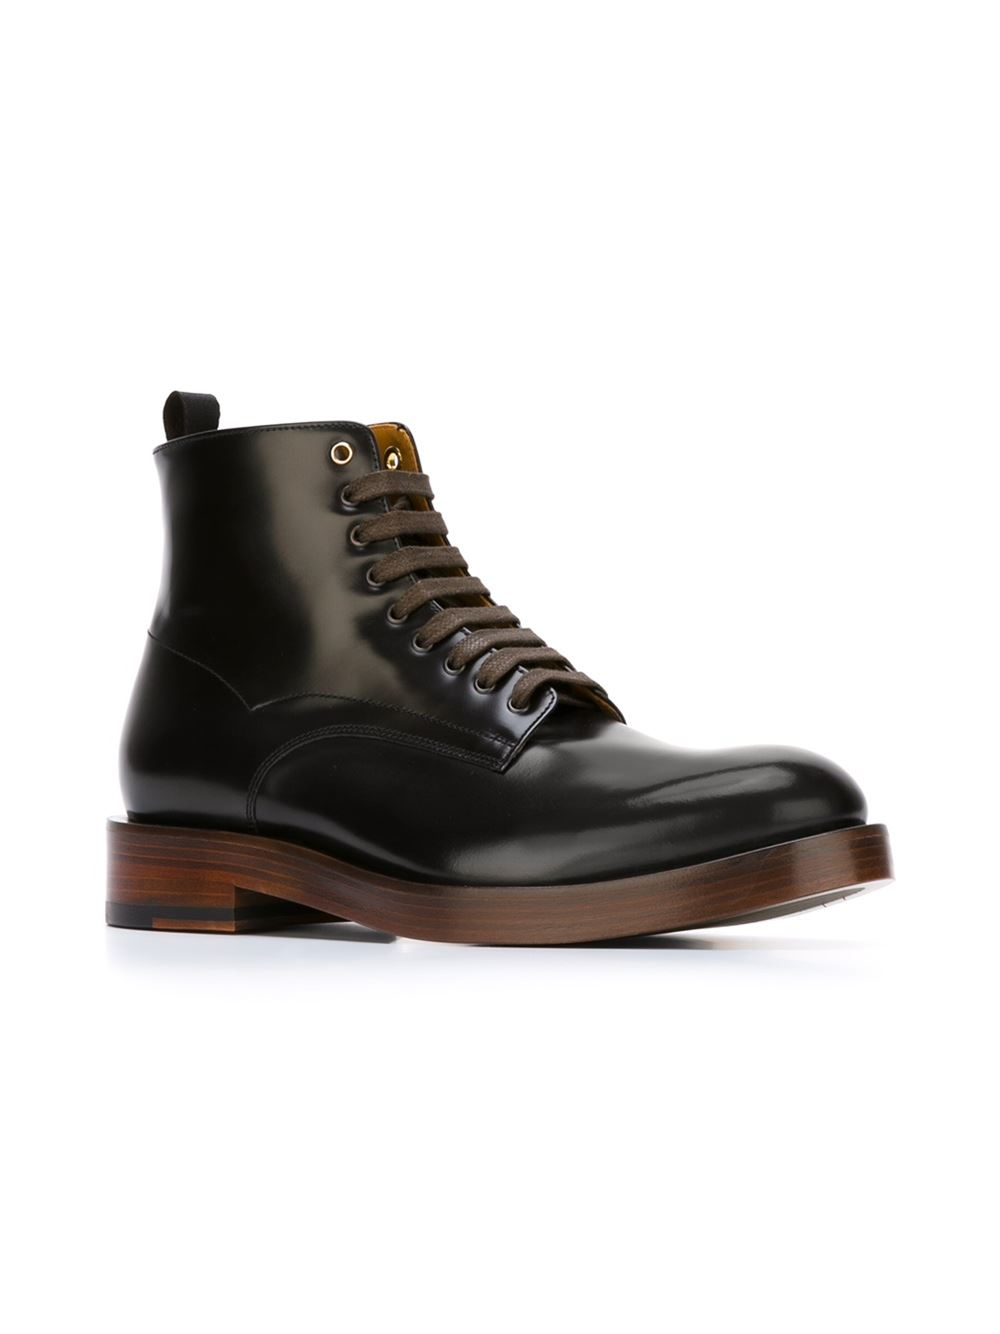 Lyst Paul Smith Lace Up Boots In Gray For Men